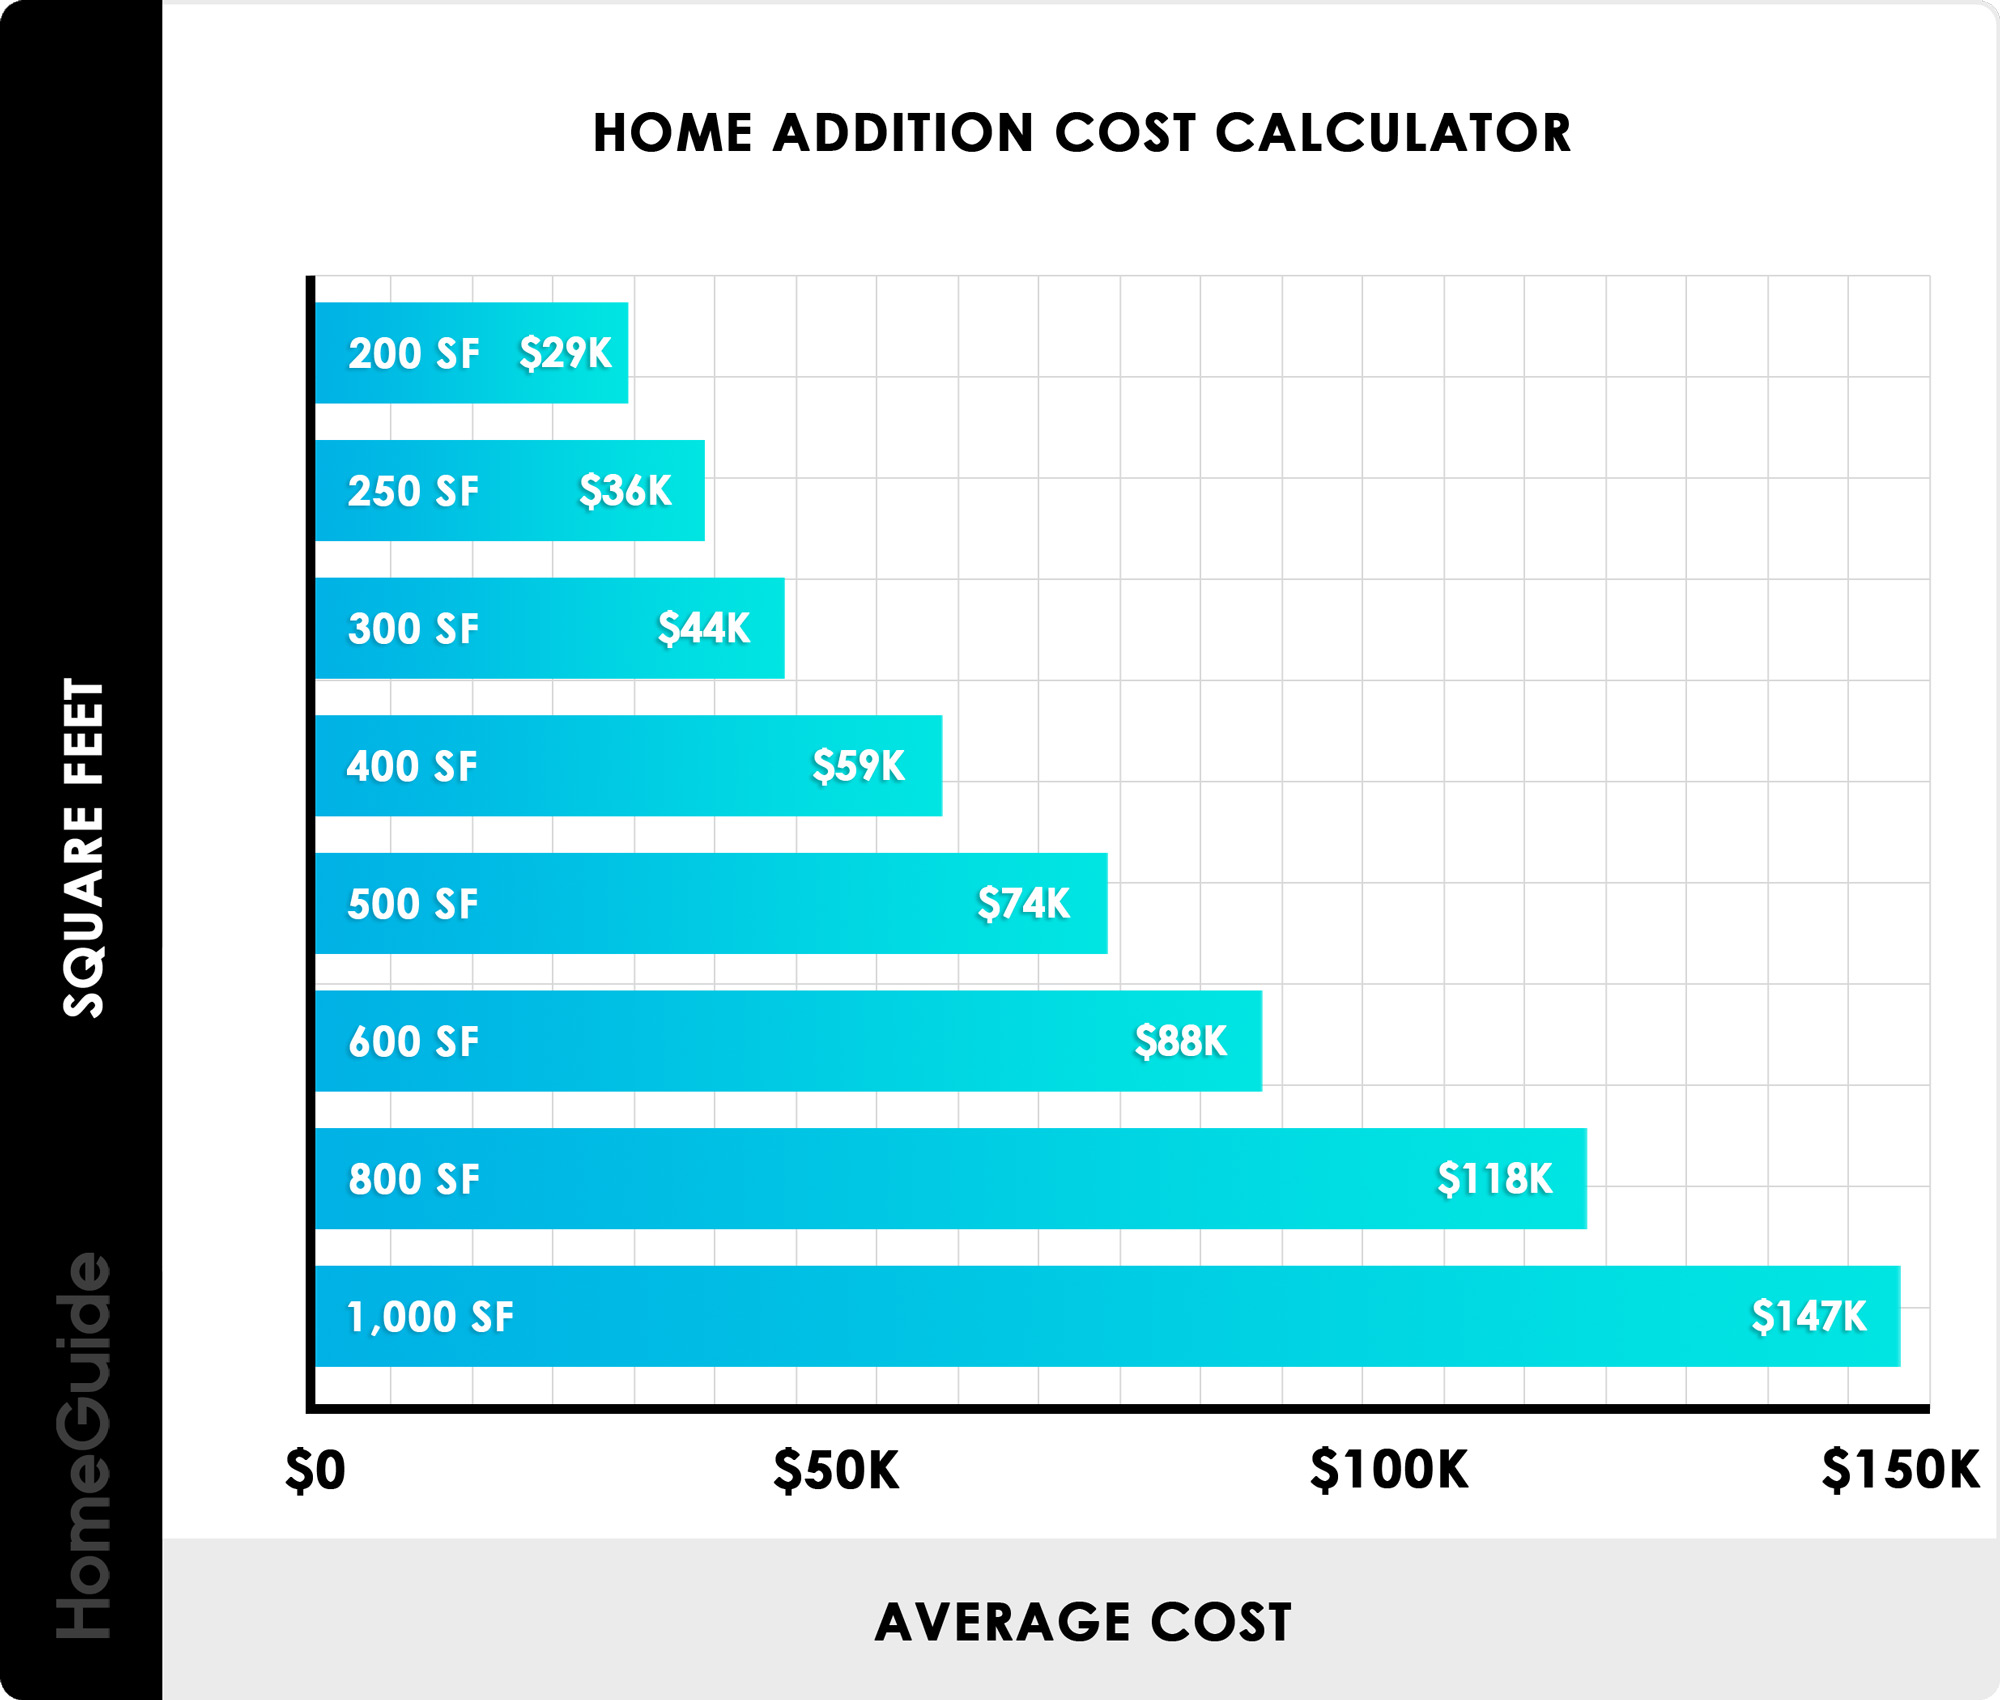 Home Addition Costs